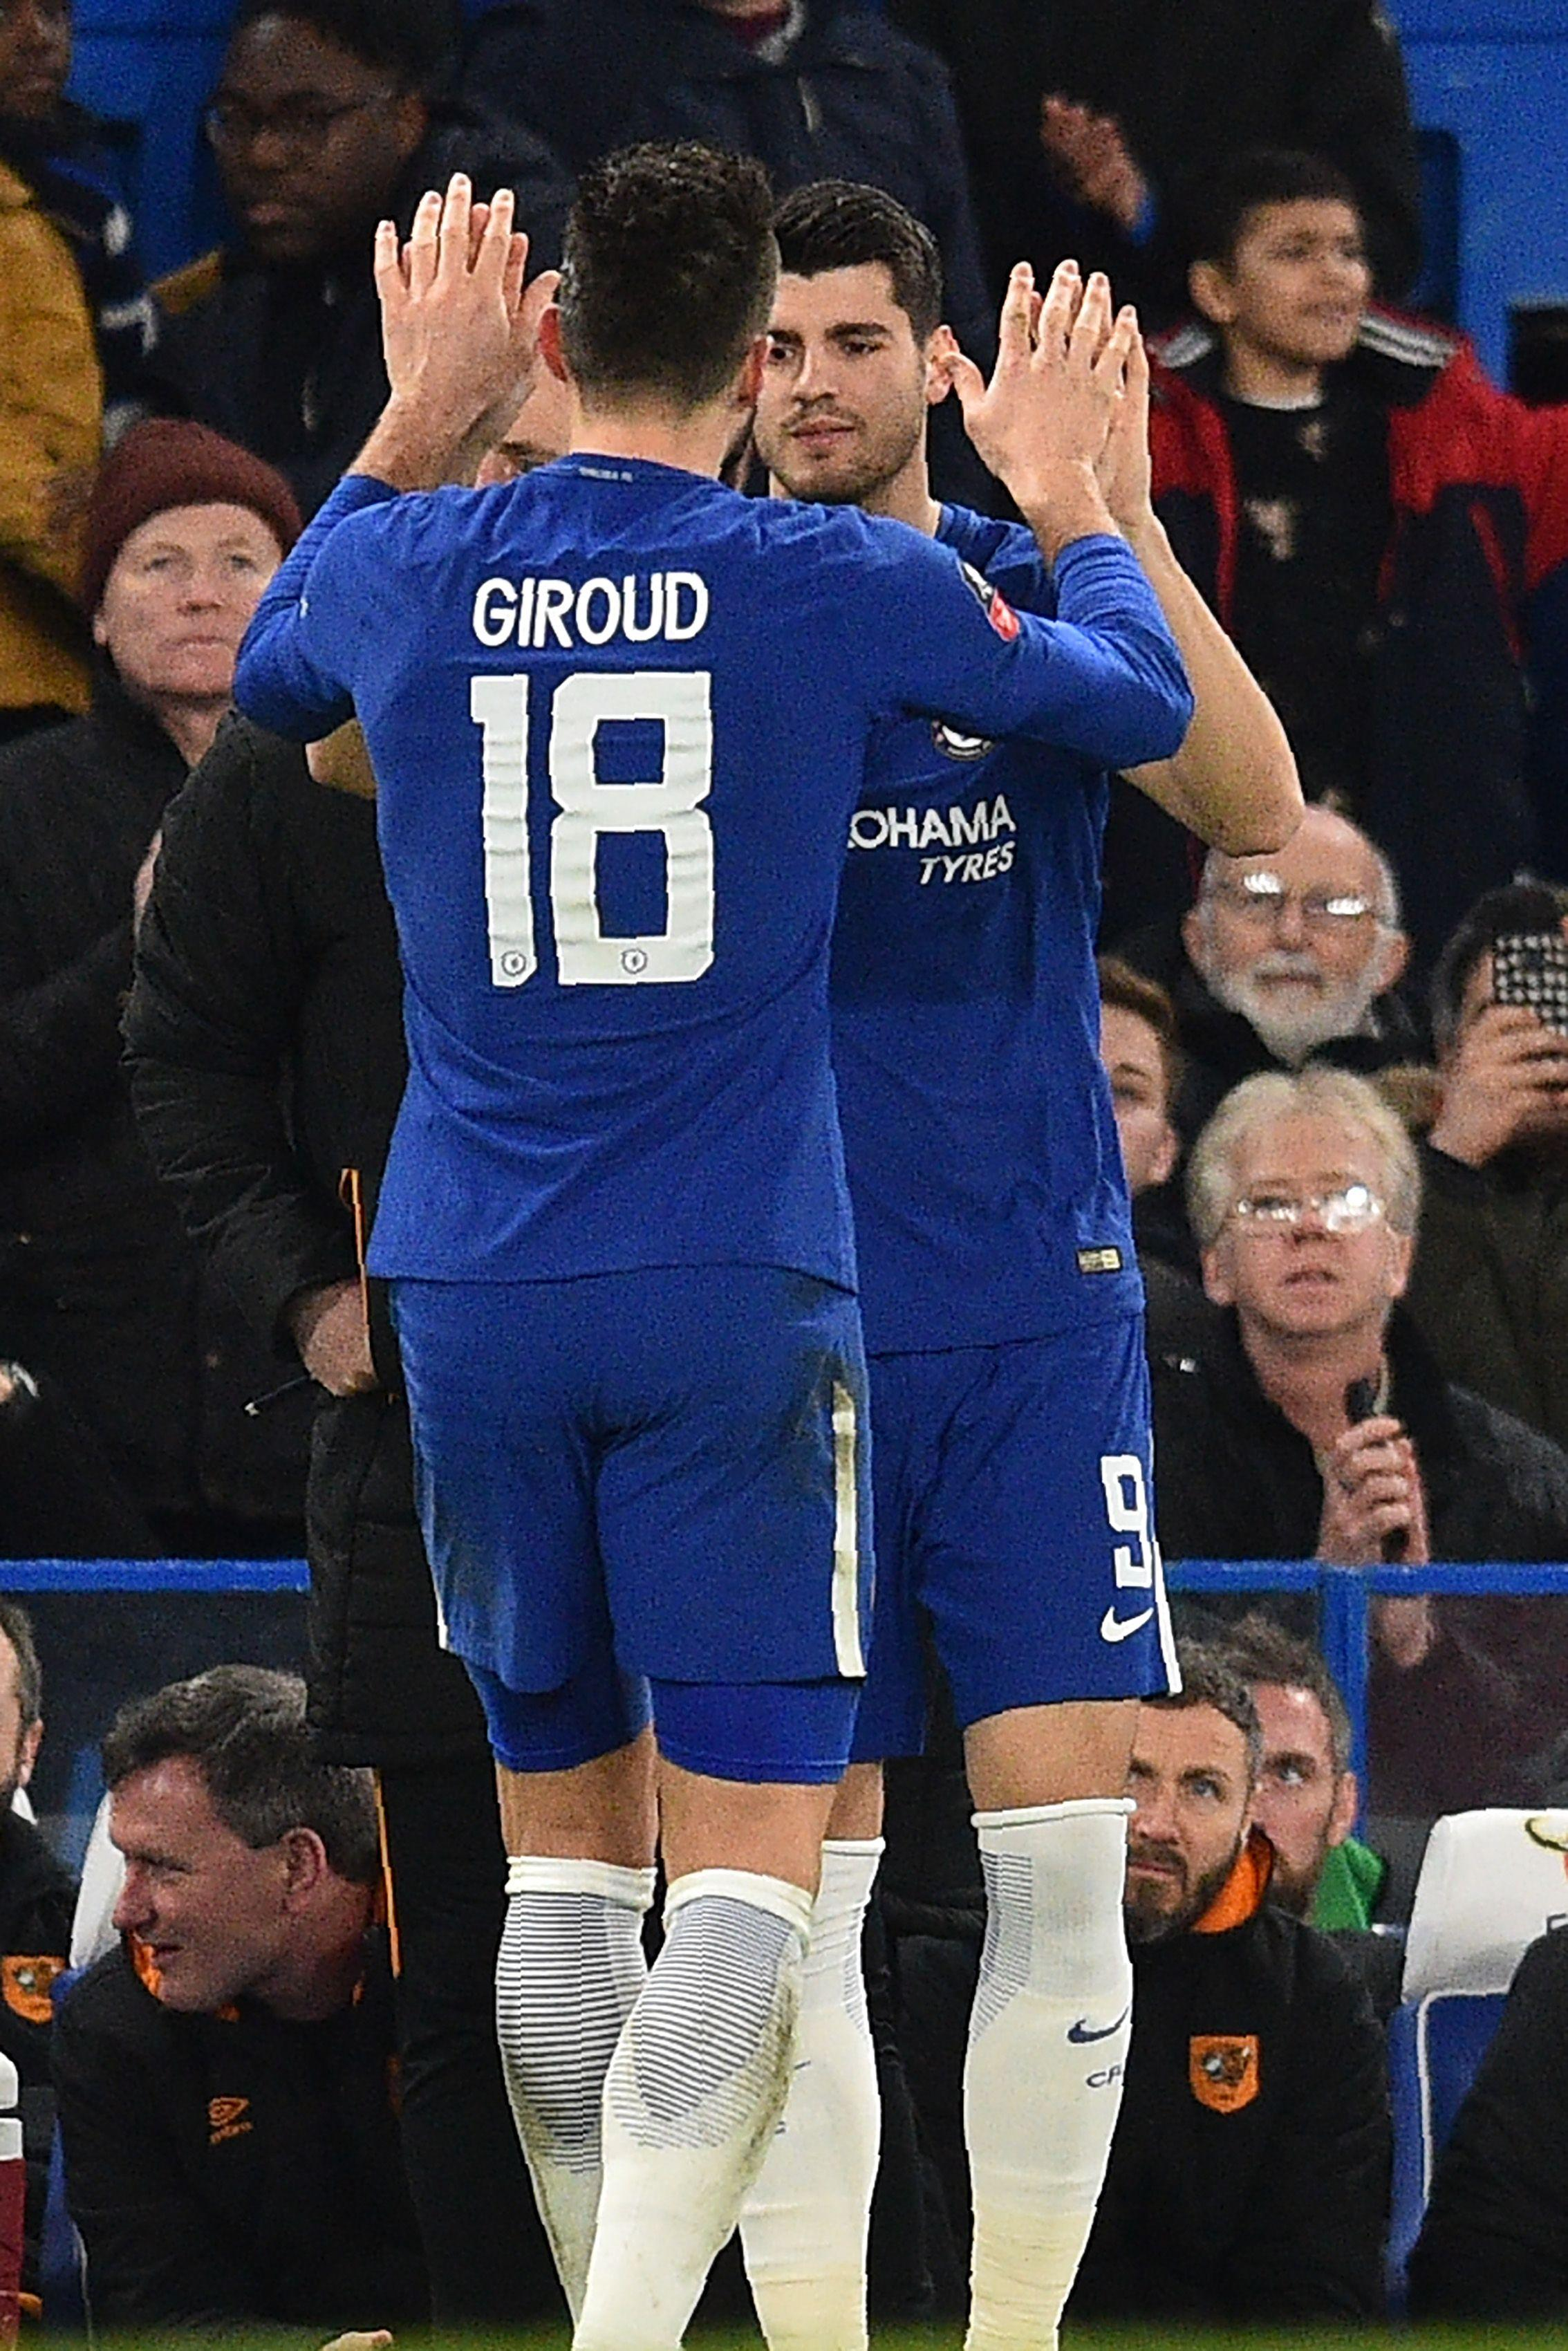 Surely one of these two laying it off for Hazard is the way to go?